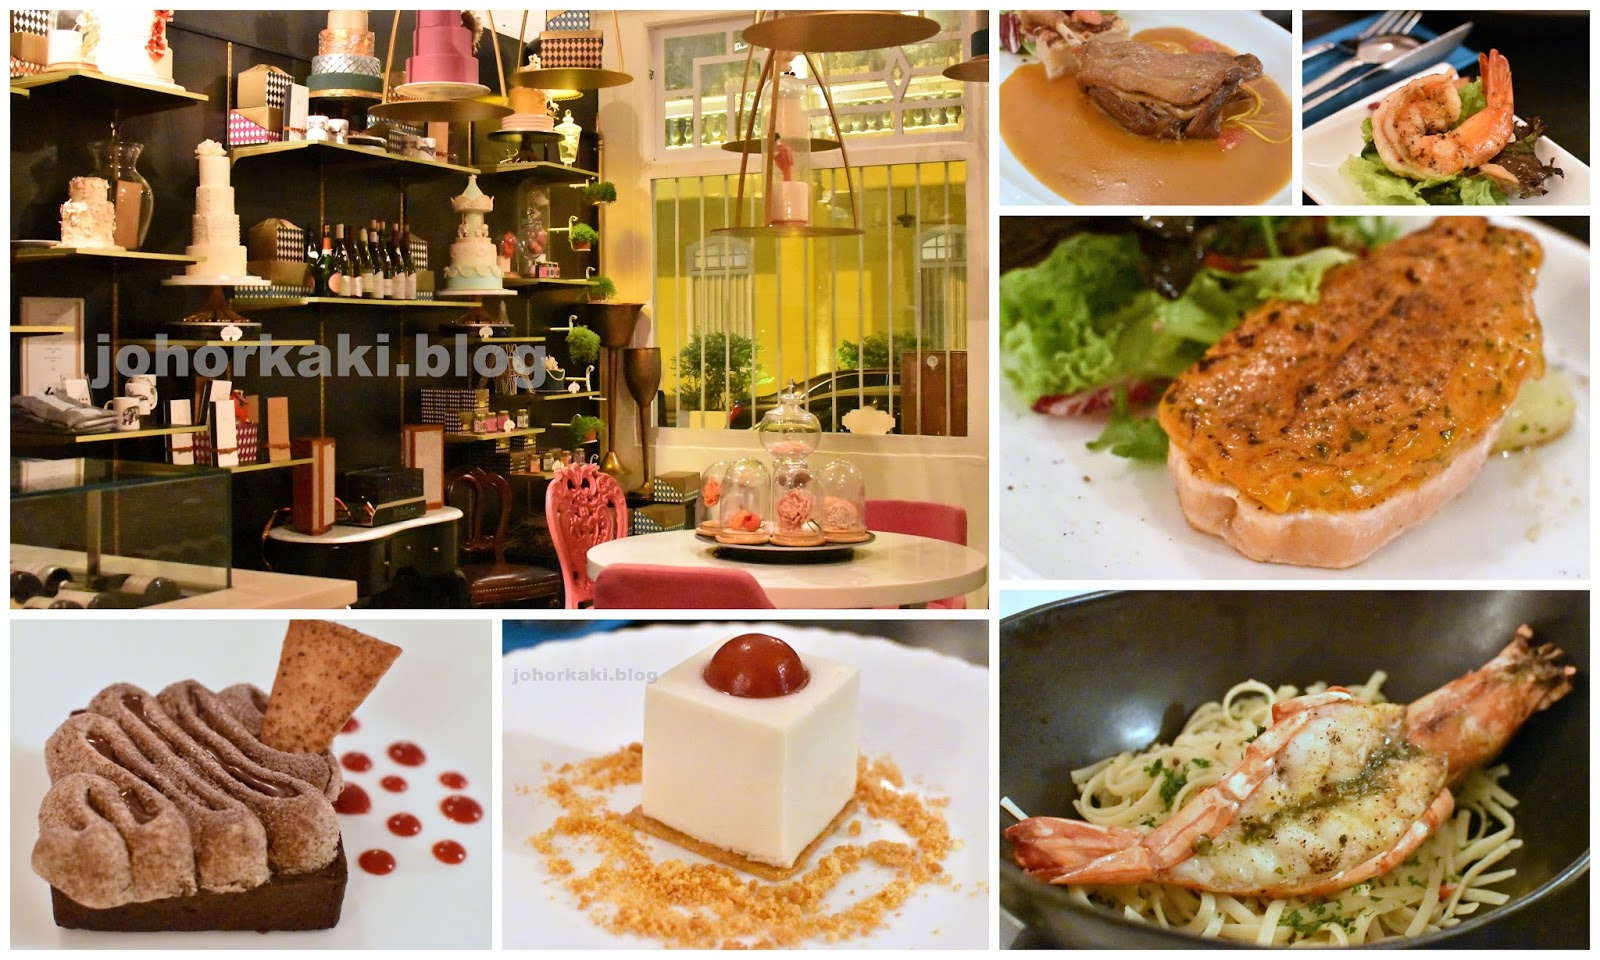 Mad about sucre french cuisine and patisserie in singapore for Cuisine patisserie